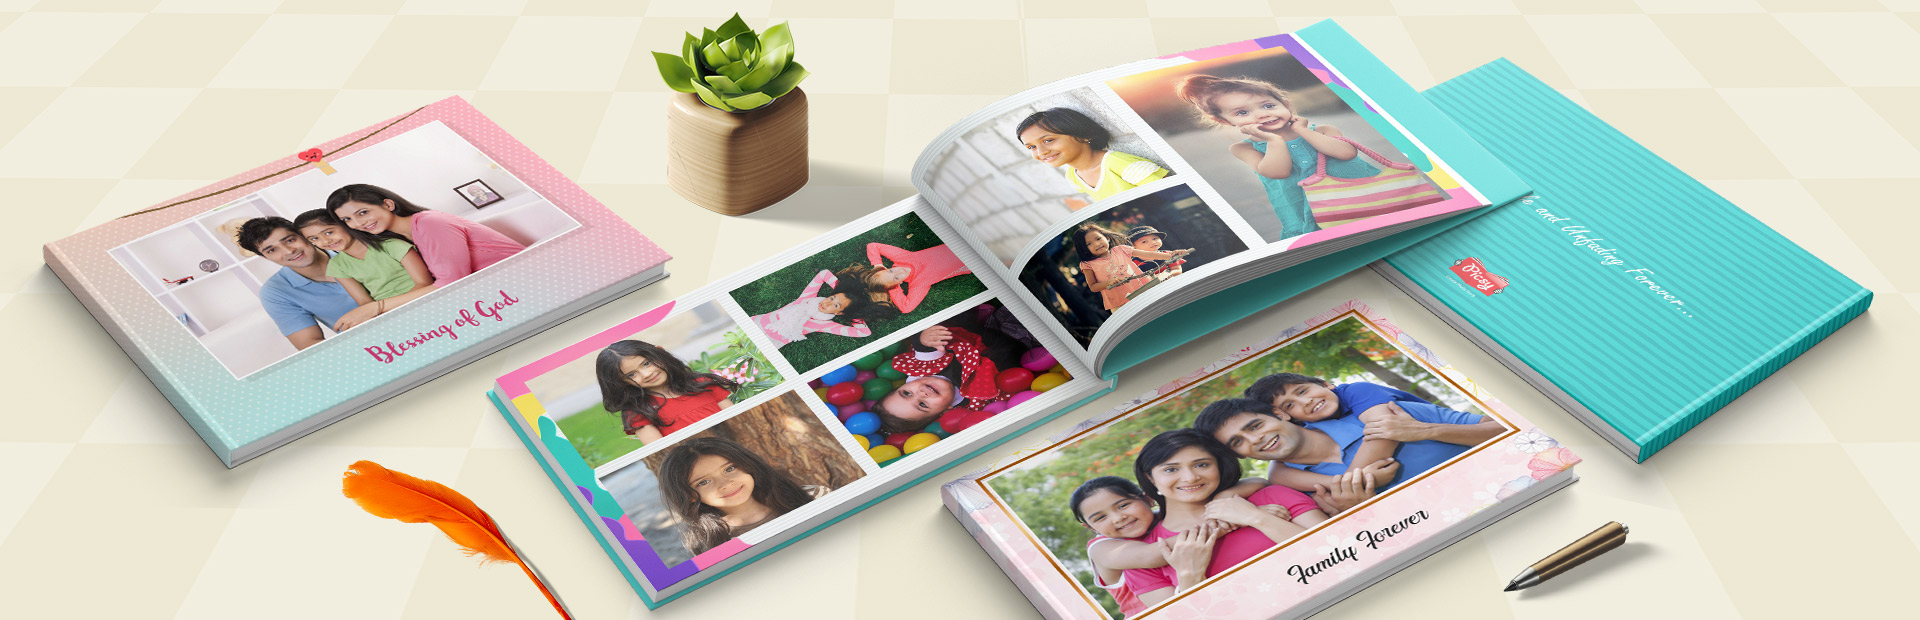 Family Photo Book Themes